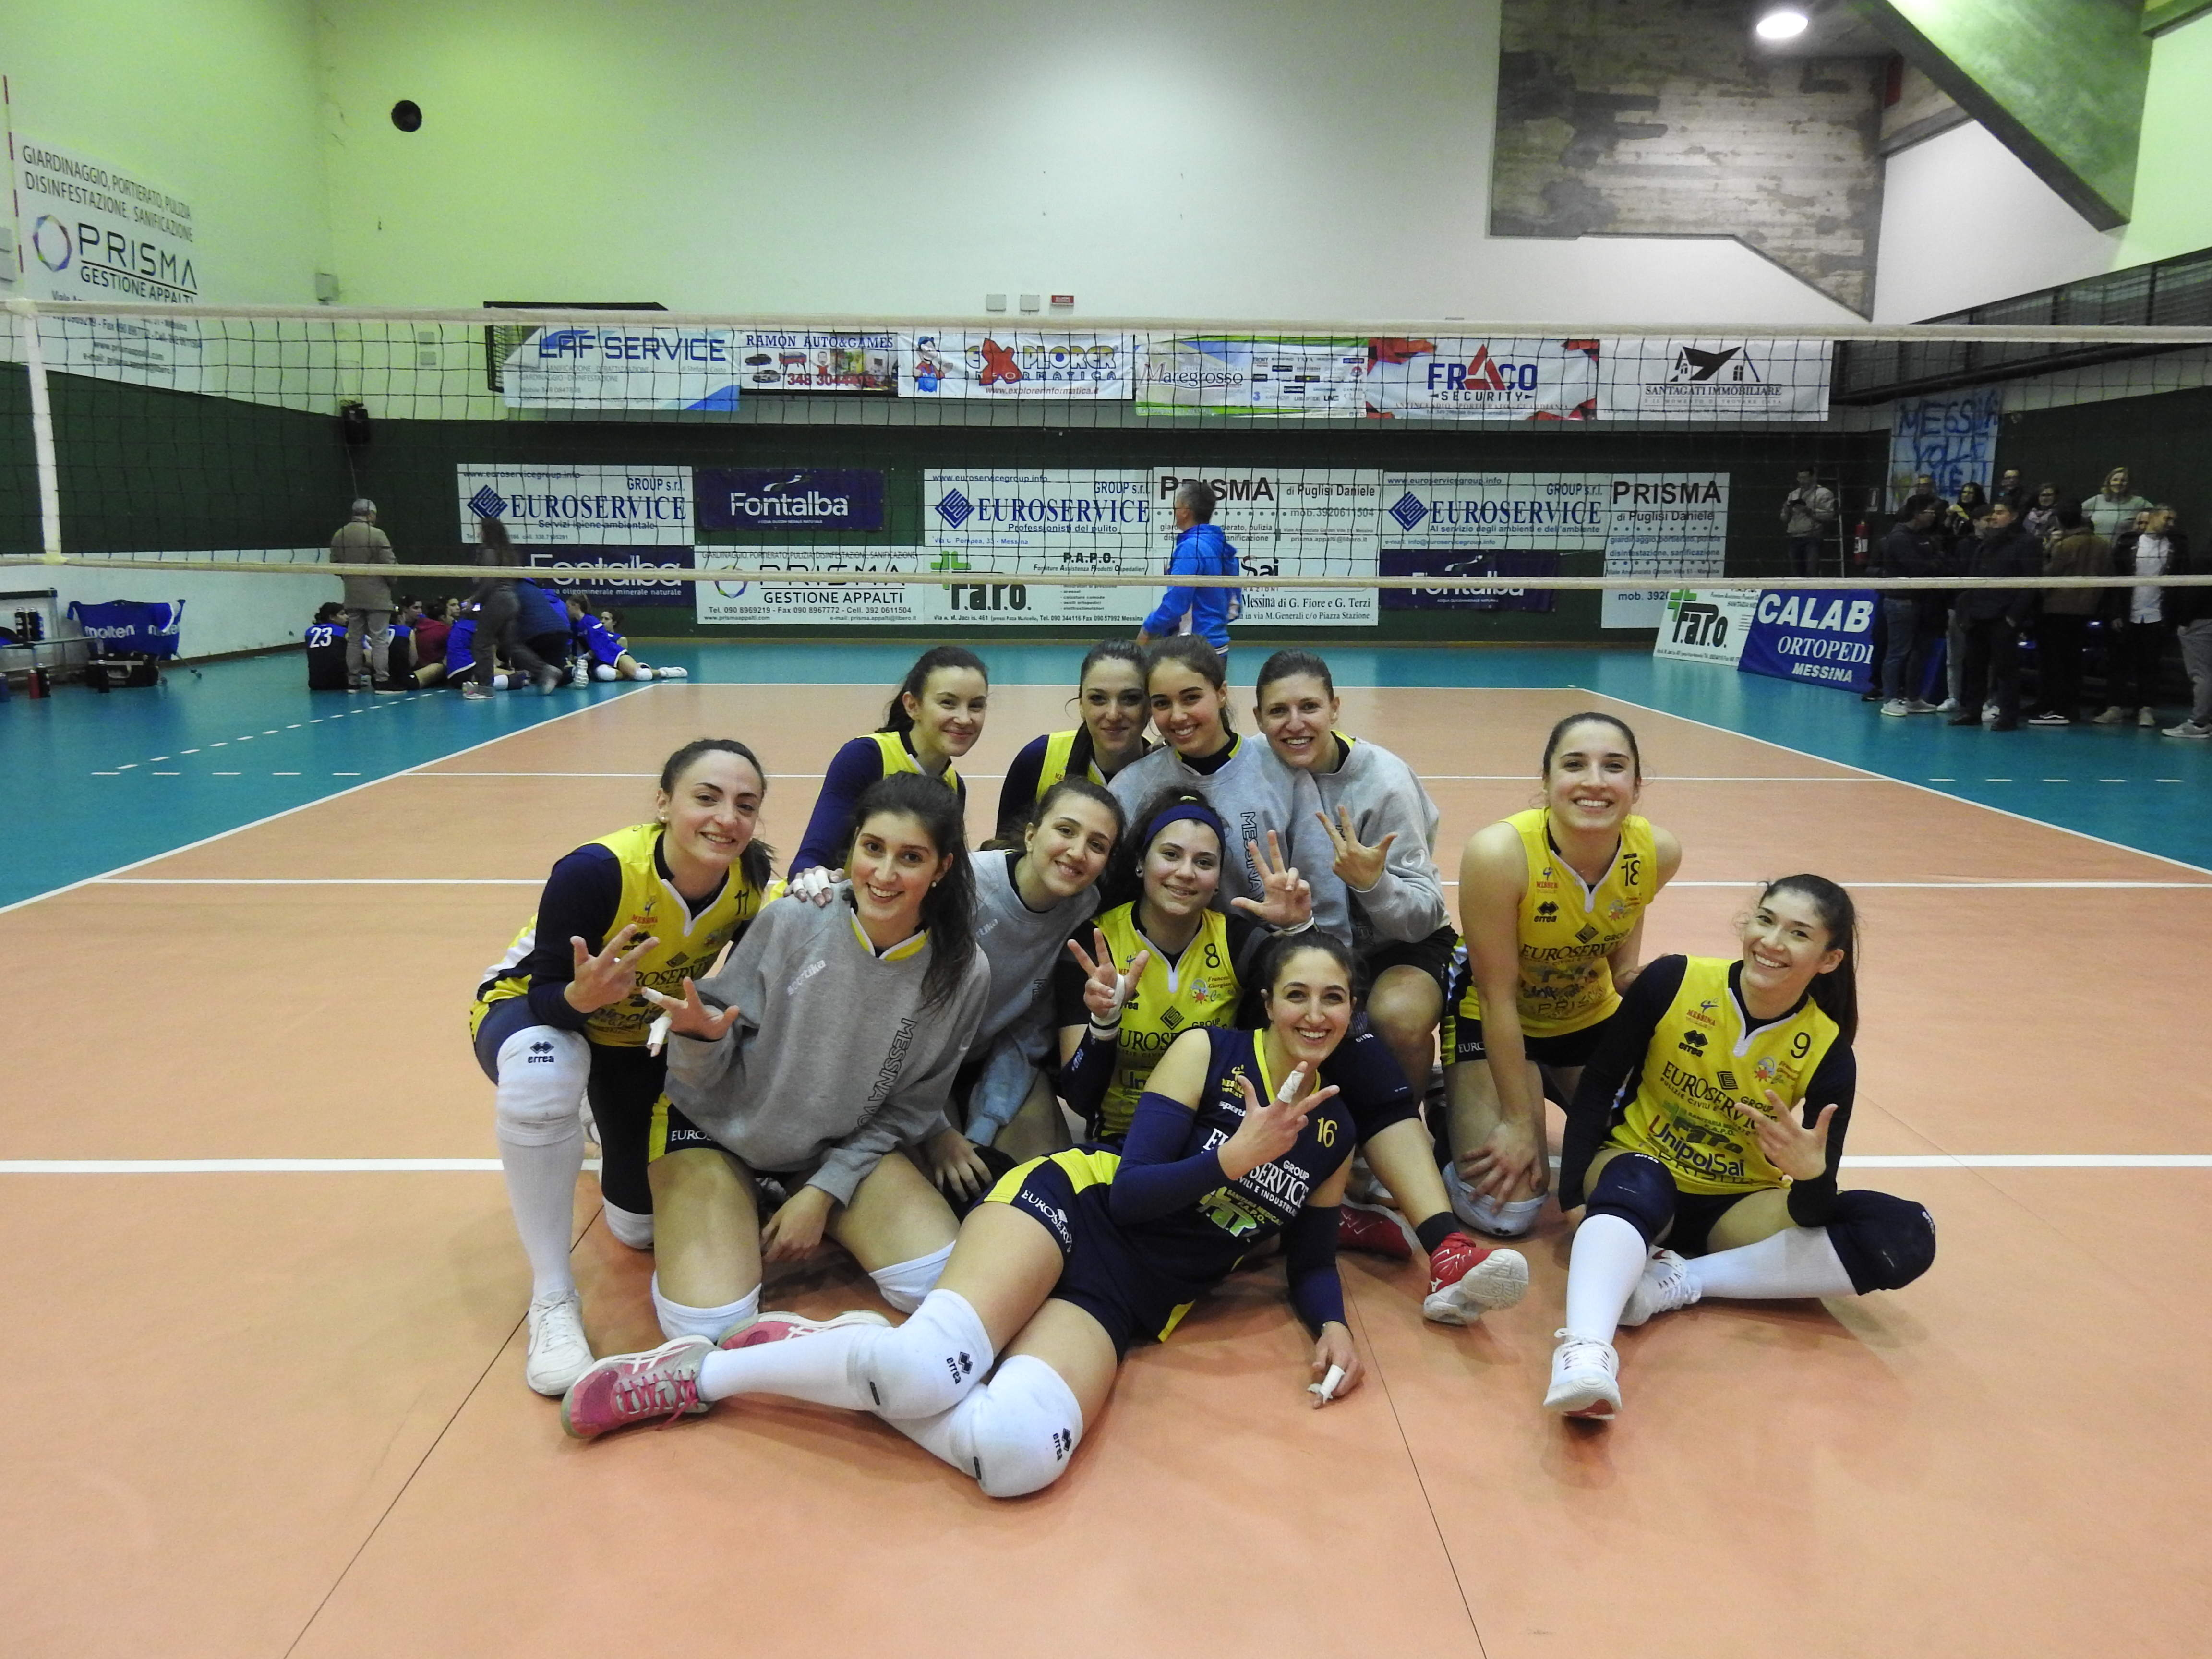 La capolista Messina Volley supera in casa la Polisportiva Nino Romano per 3-1